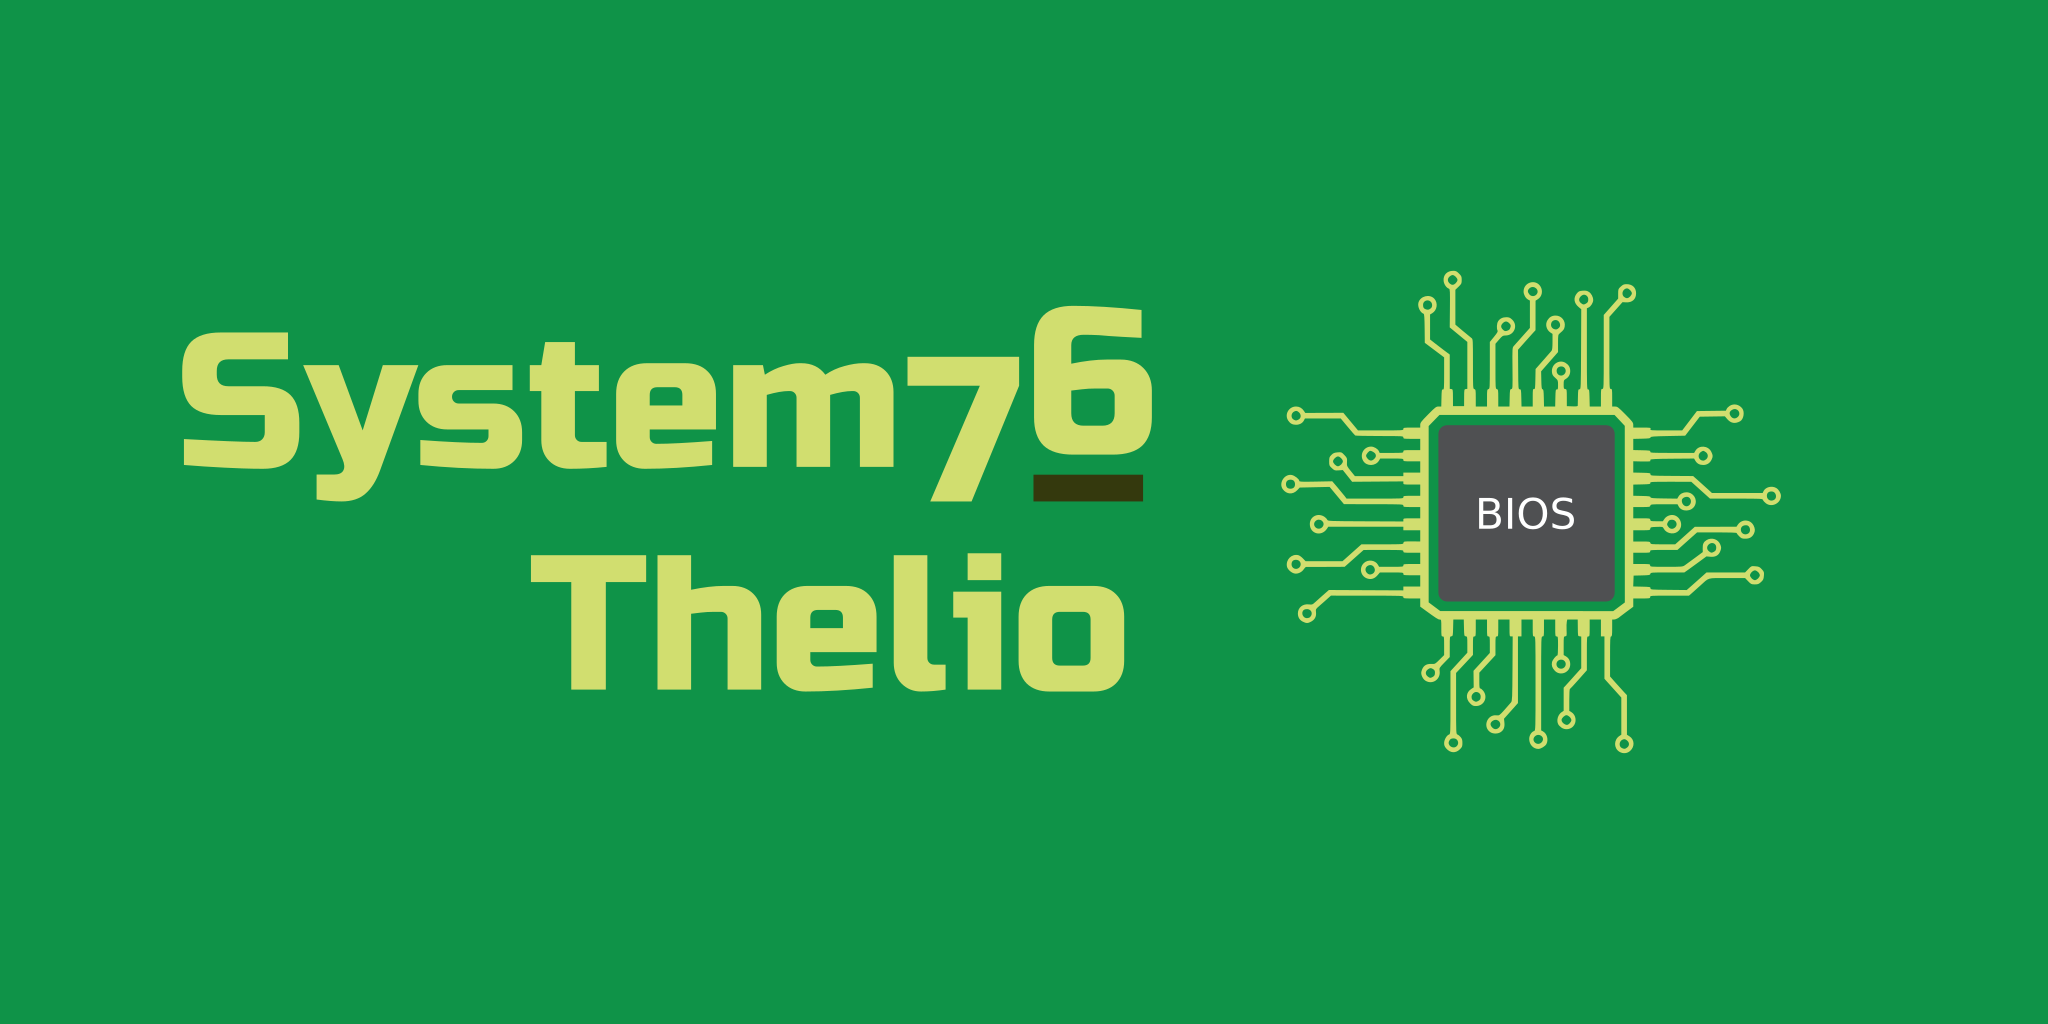 How to Update the BIOS on System76's Thelio Desktop | Feliciano Tech